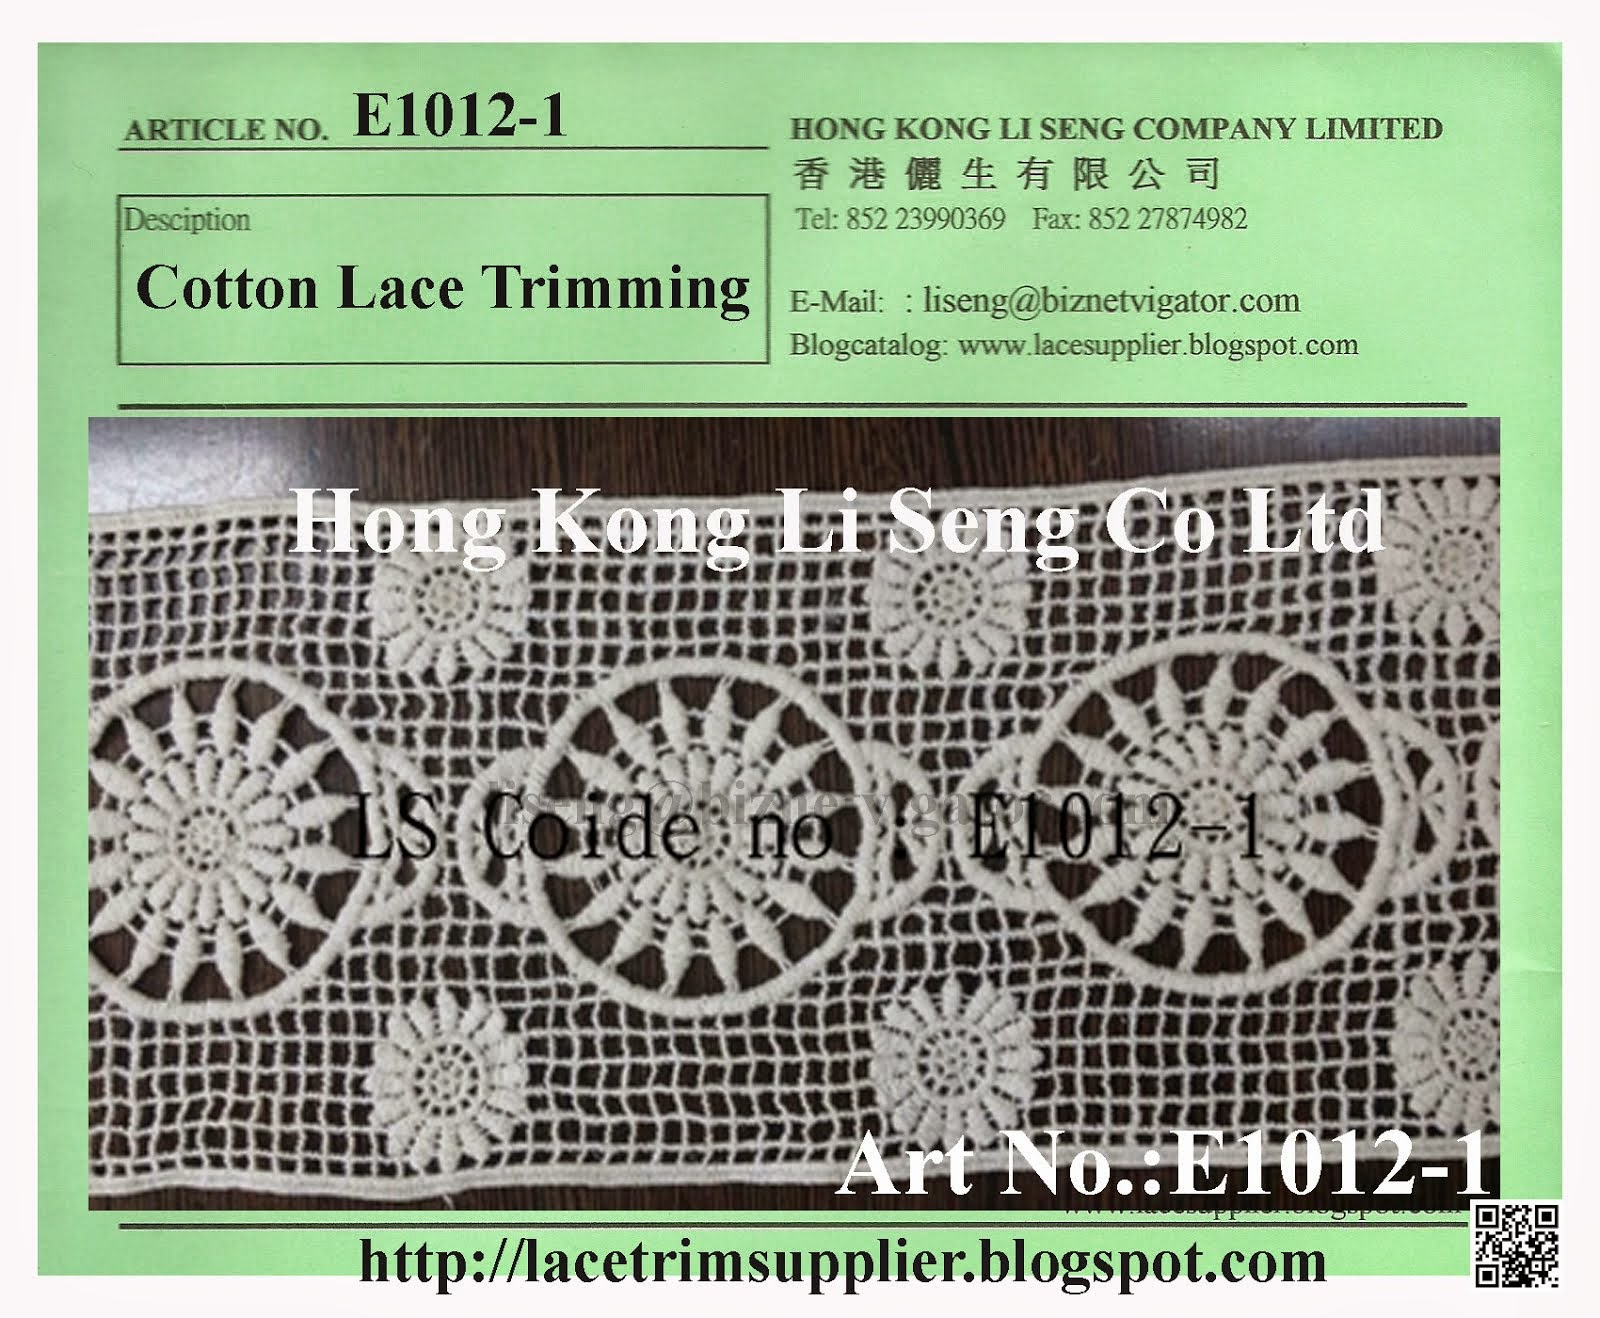 Embroidered Cotton Lace Trimming Manufacturer Wholesale and Supplier - Hong Kong Li Seng Co Ltd